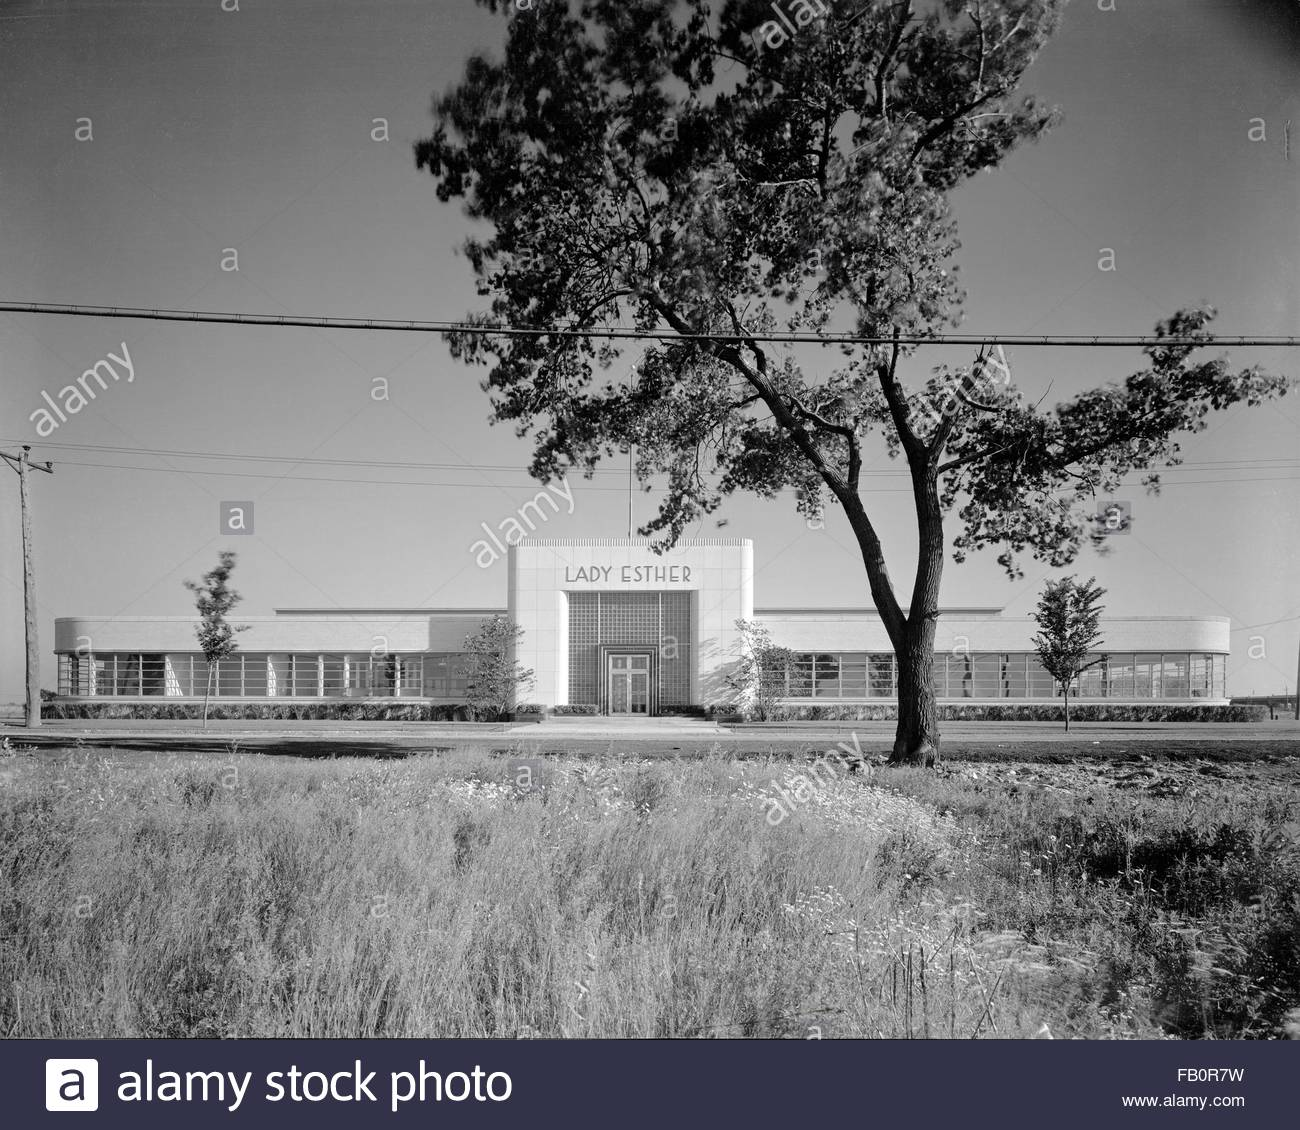 Lady Esther plant in Chicago (Ill.), 1938 July 12. Front elevation. - Stock Image